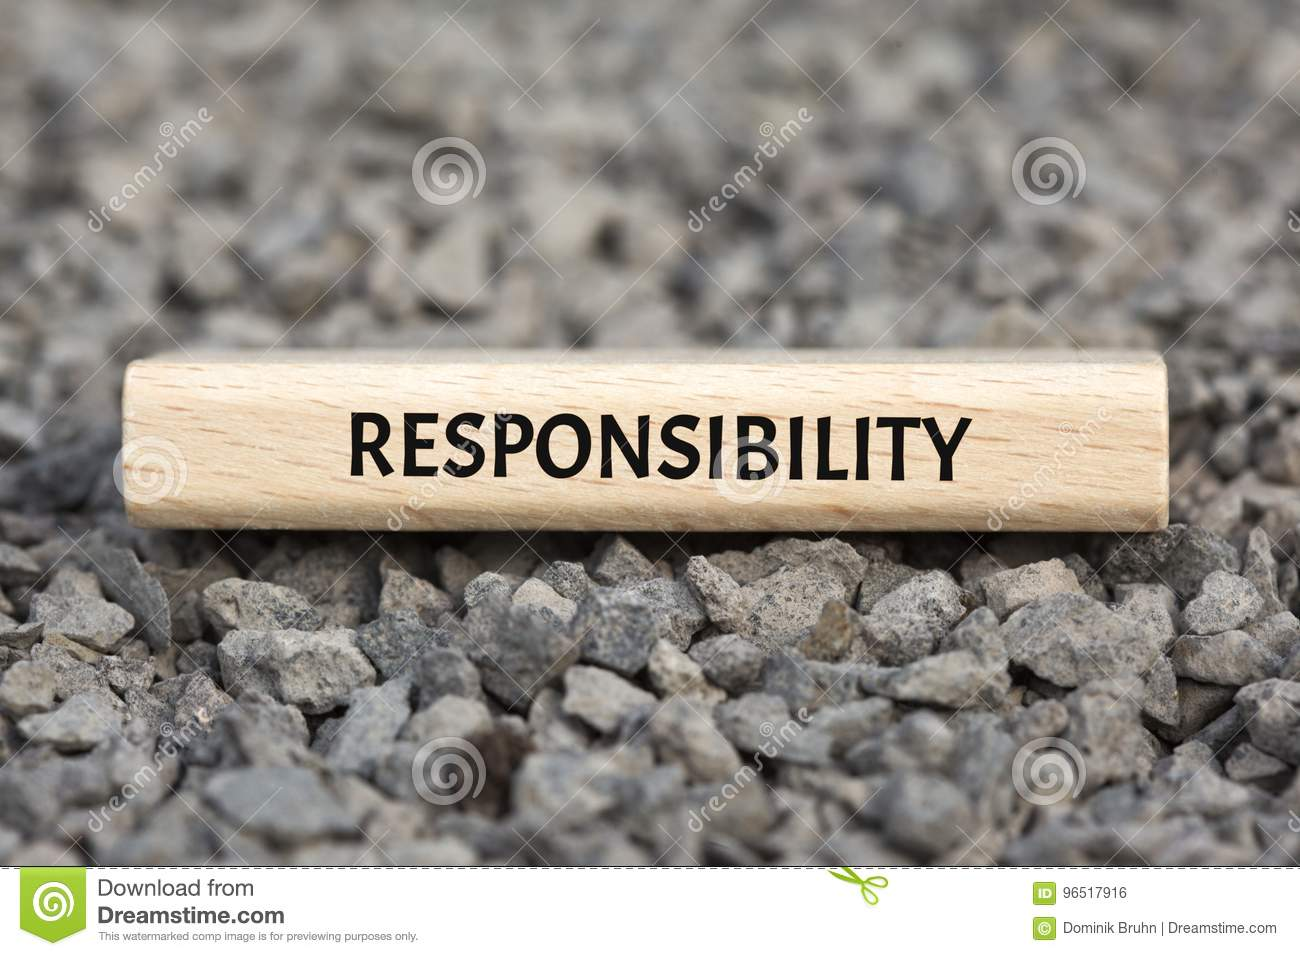 RESPONSIBILITY - EXEMPTION - Image With Words Associated ...